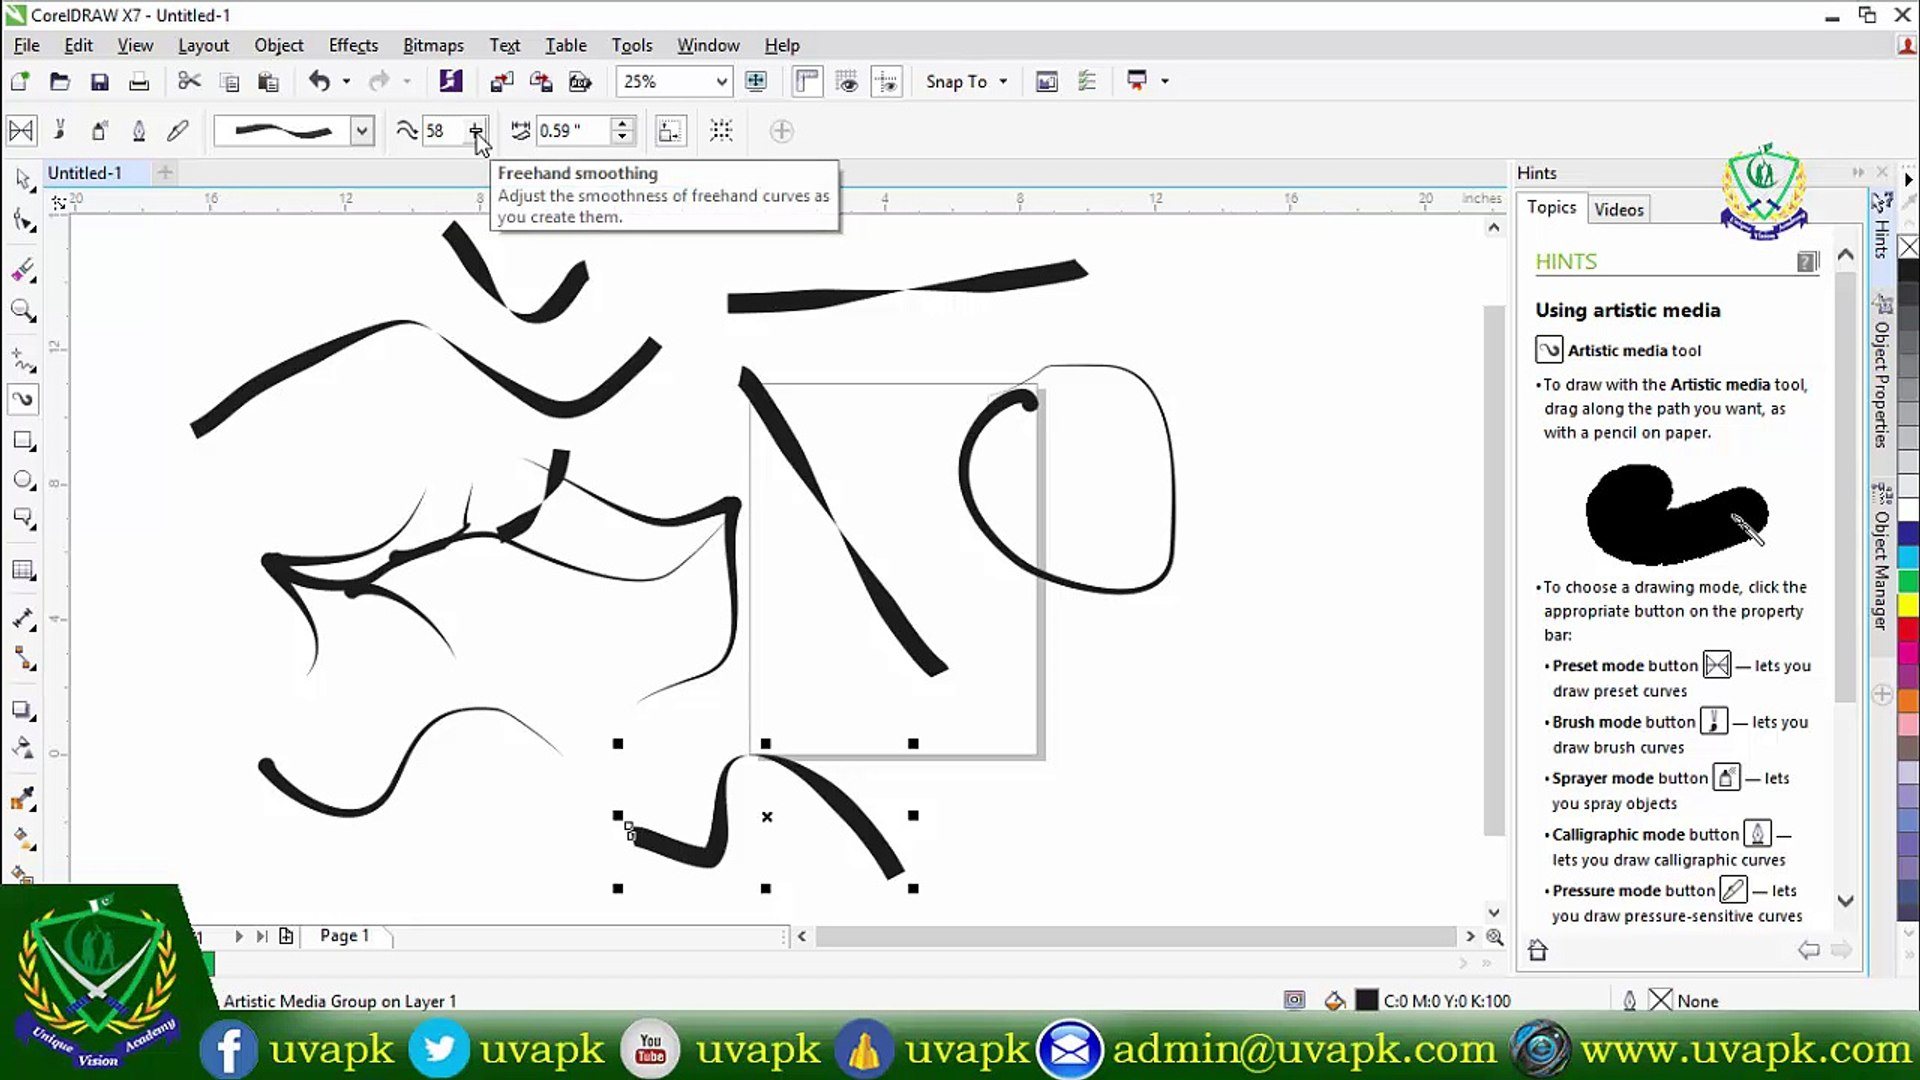 Lecture 6 How To Use Artistic Media Tool In Corel Draw X7 In Hindi Urdu Video Dailymotion